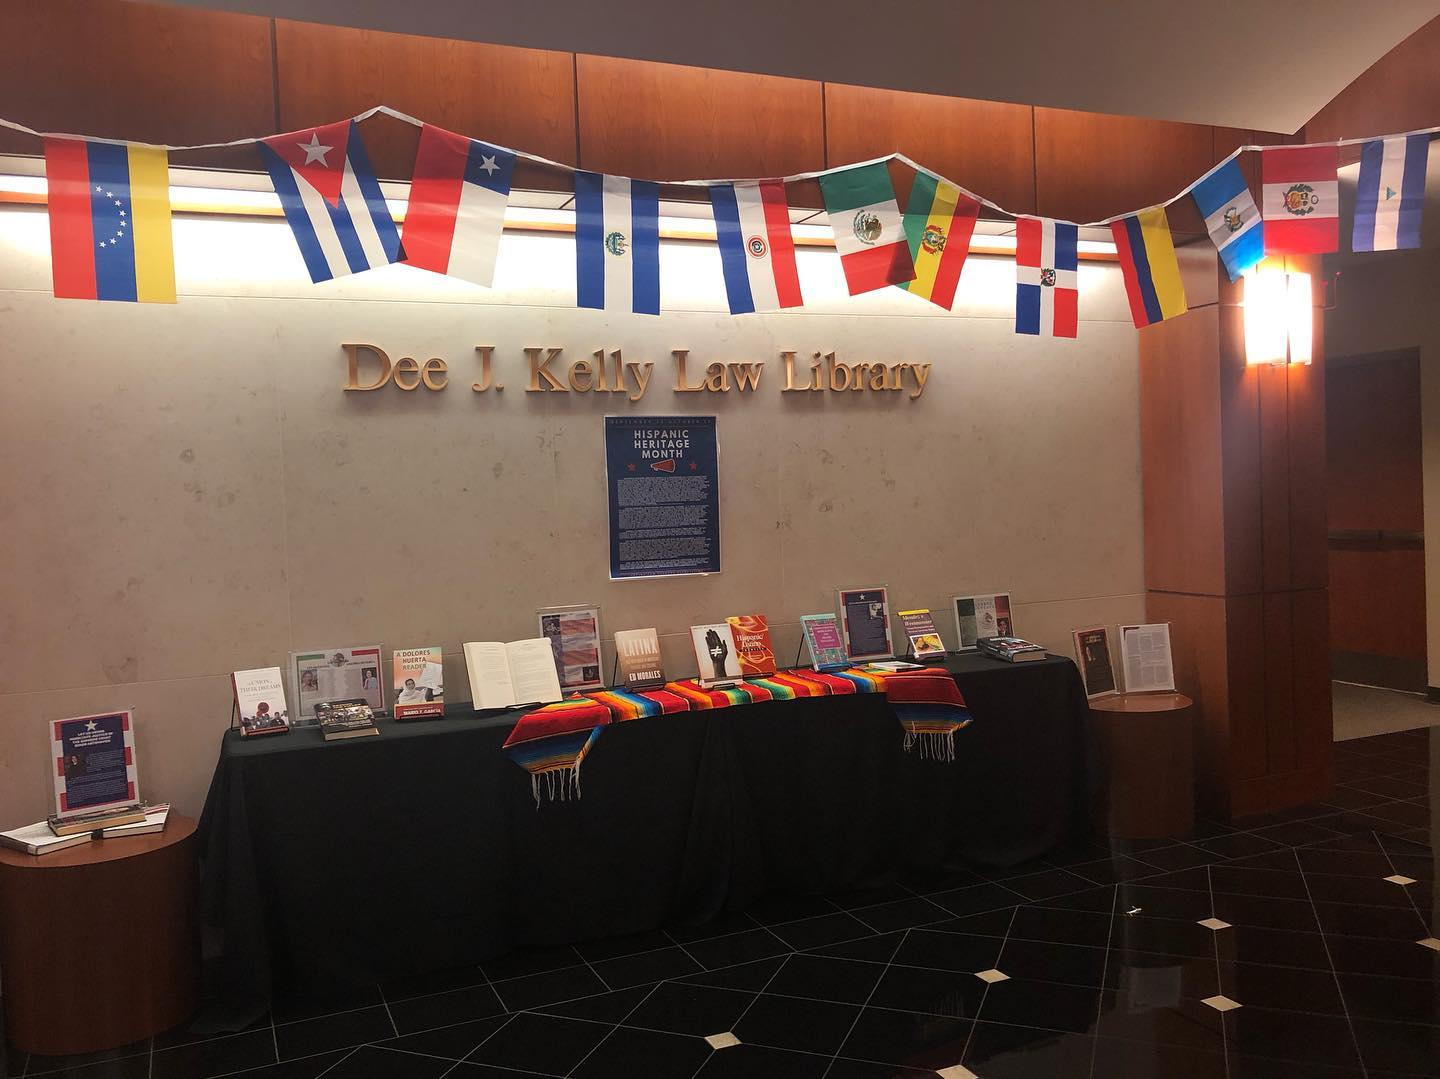 HIspanic Heritage Month display